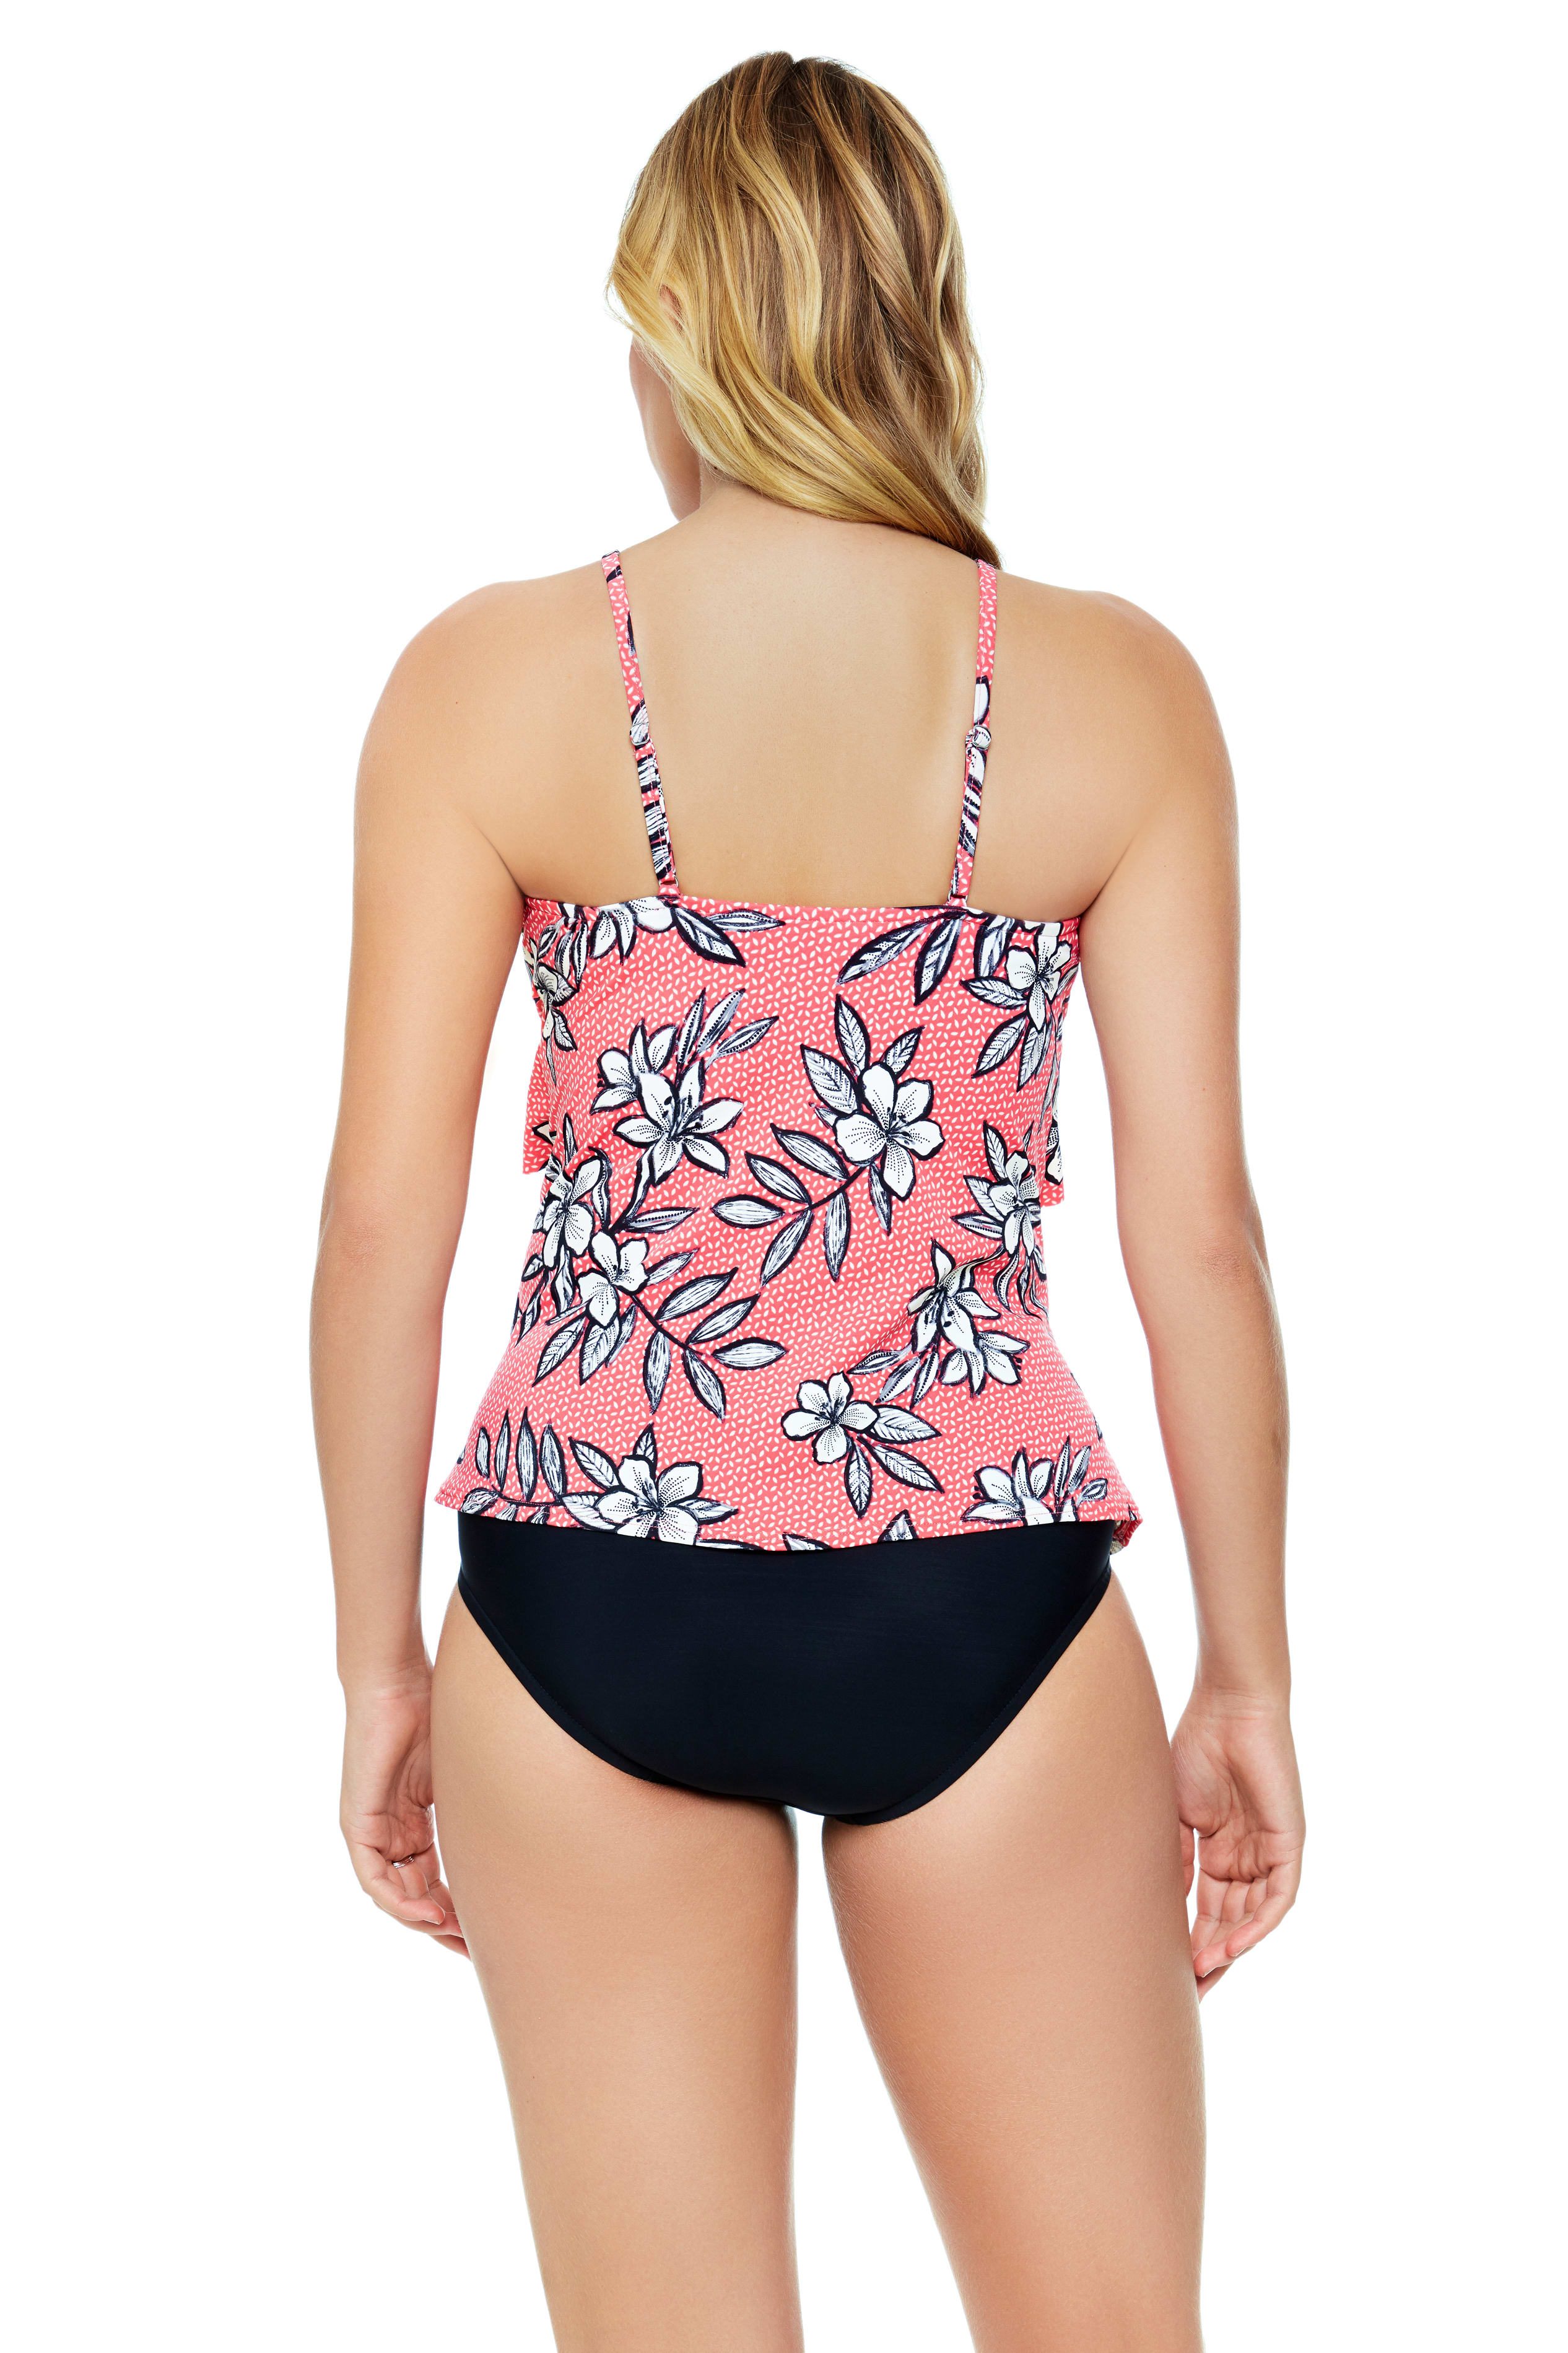 Penbrooke Catalina Coral Hi Neck Ruffle Tankini Swimsuit Top - Coral - Back